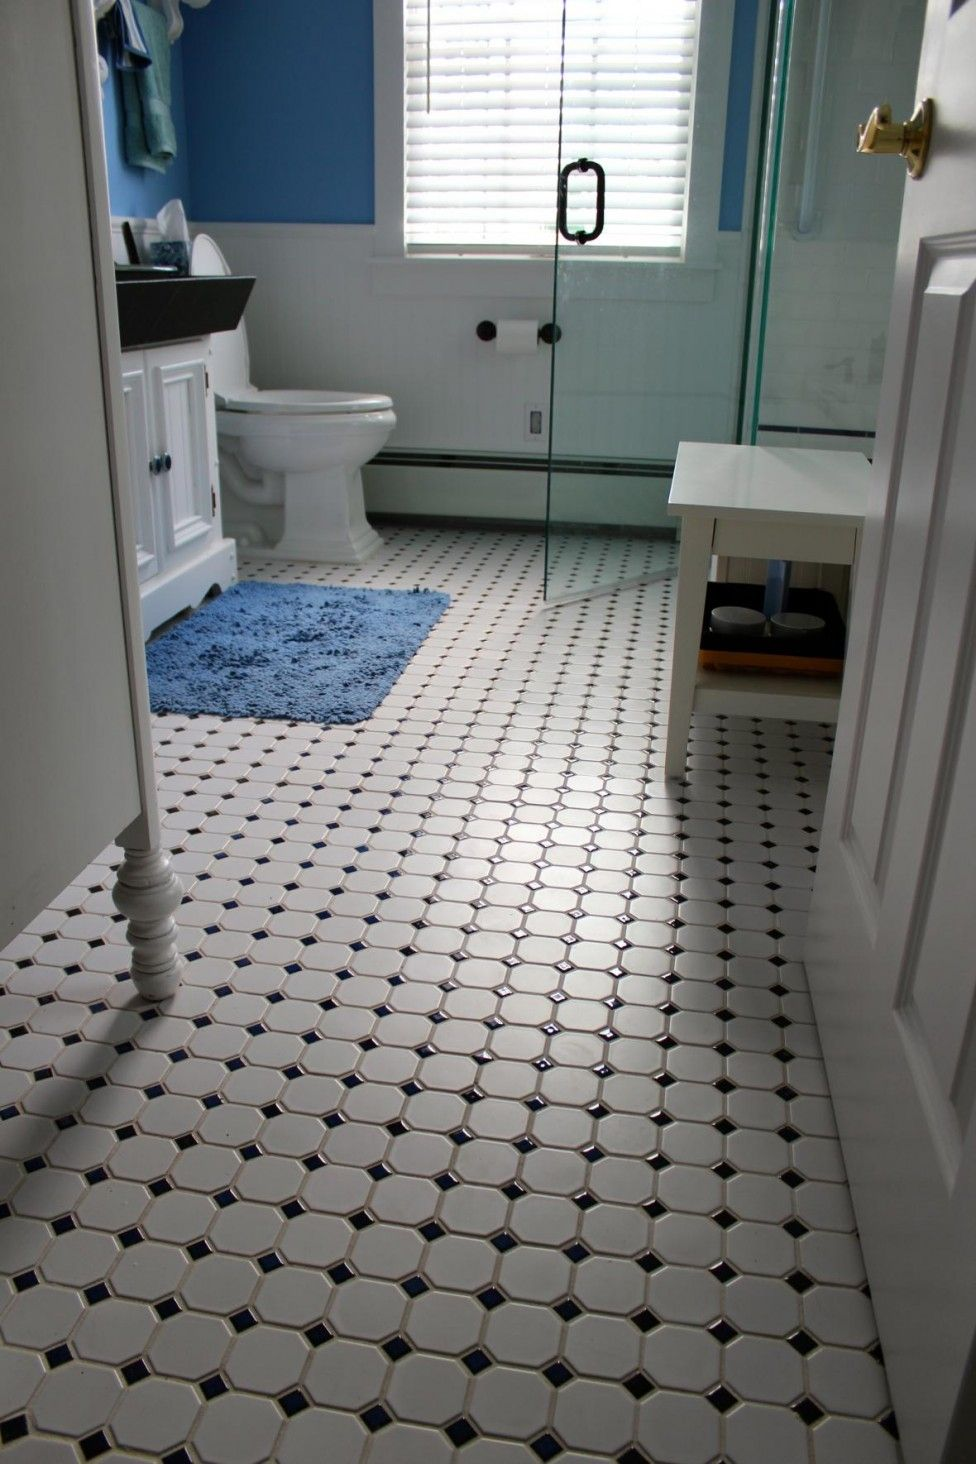 Appealing black and white bathrooms tile octagon with for Bathroom tile planner